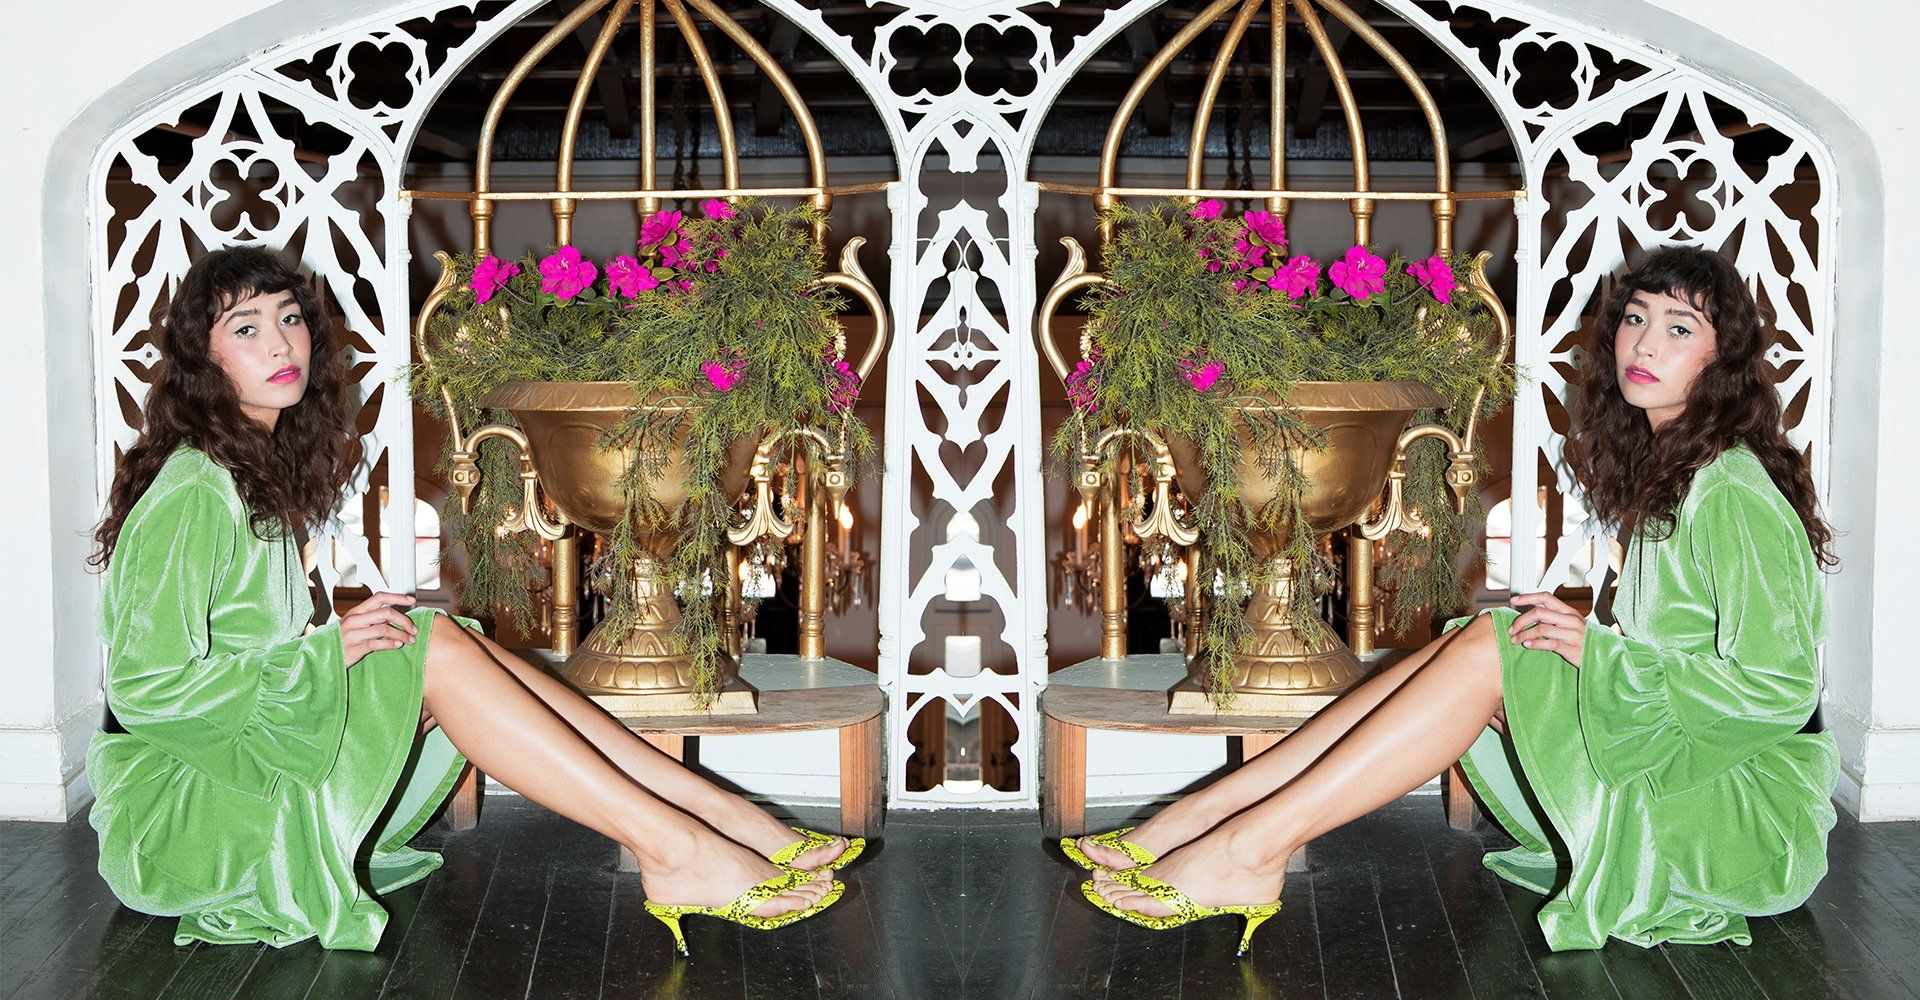 Jeffrey Campbell Shoes – The King of Shoe Trends?